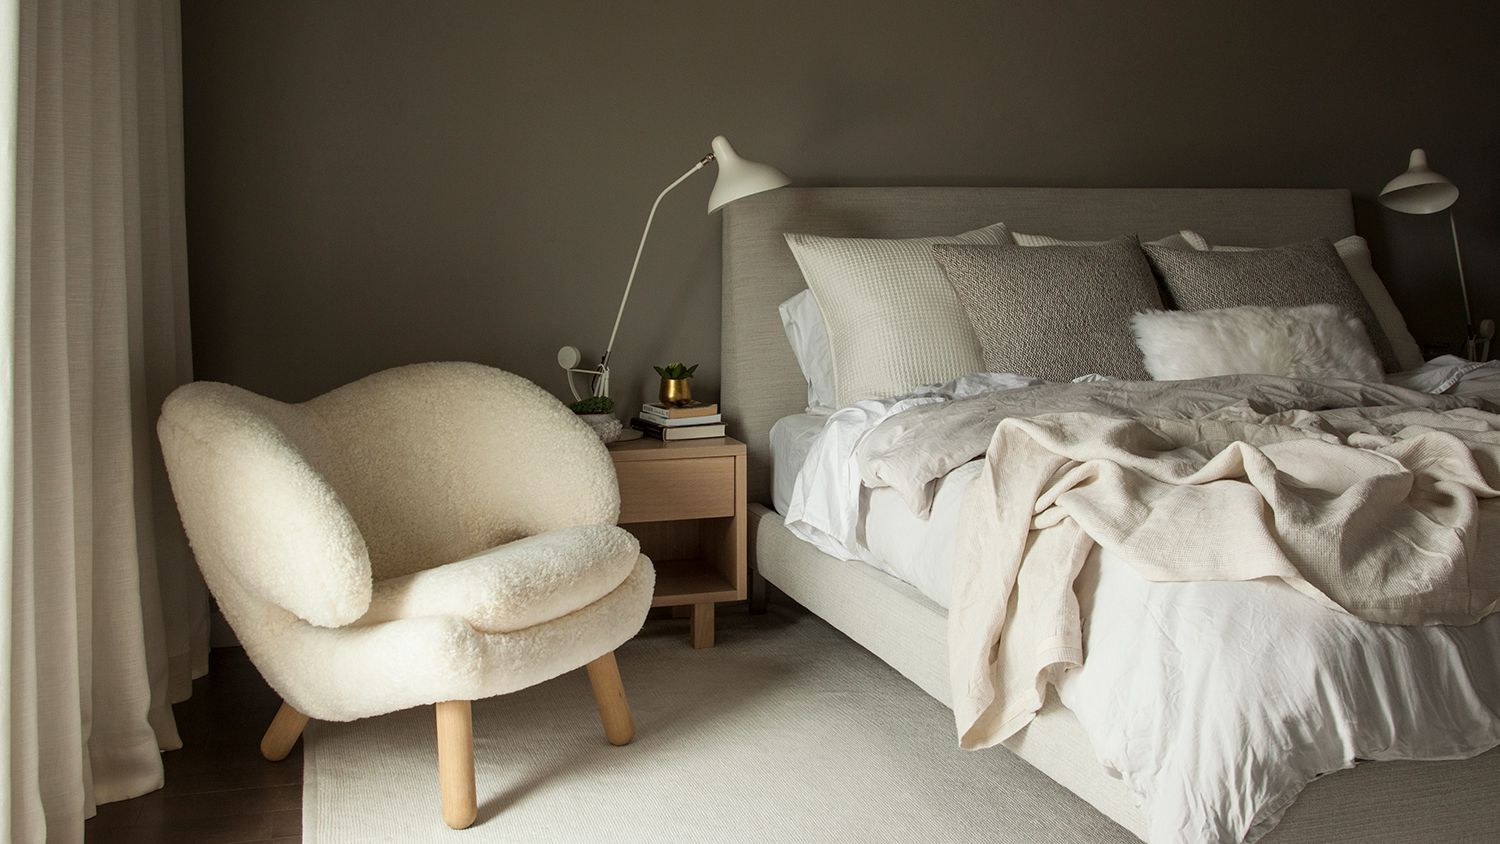 20 Cozy Bedroom Ideas to Make a Space More Homey